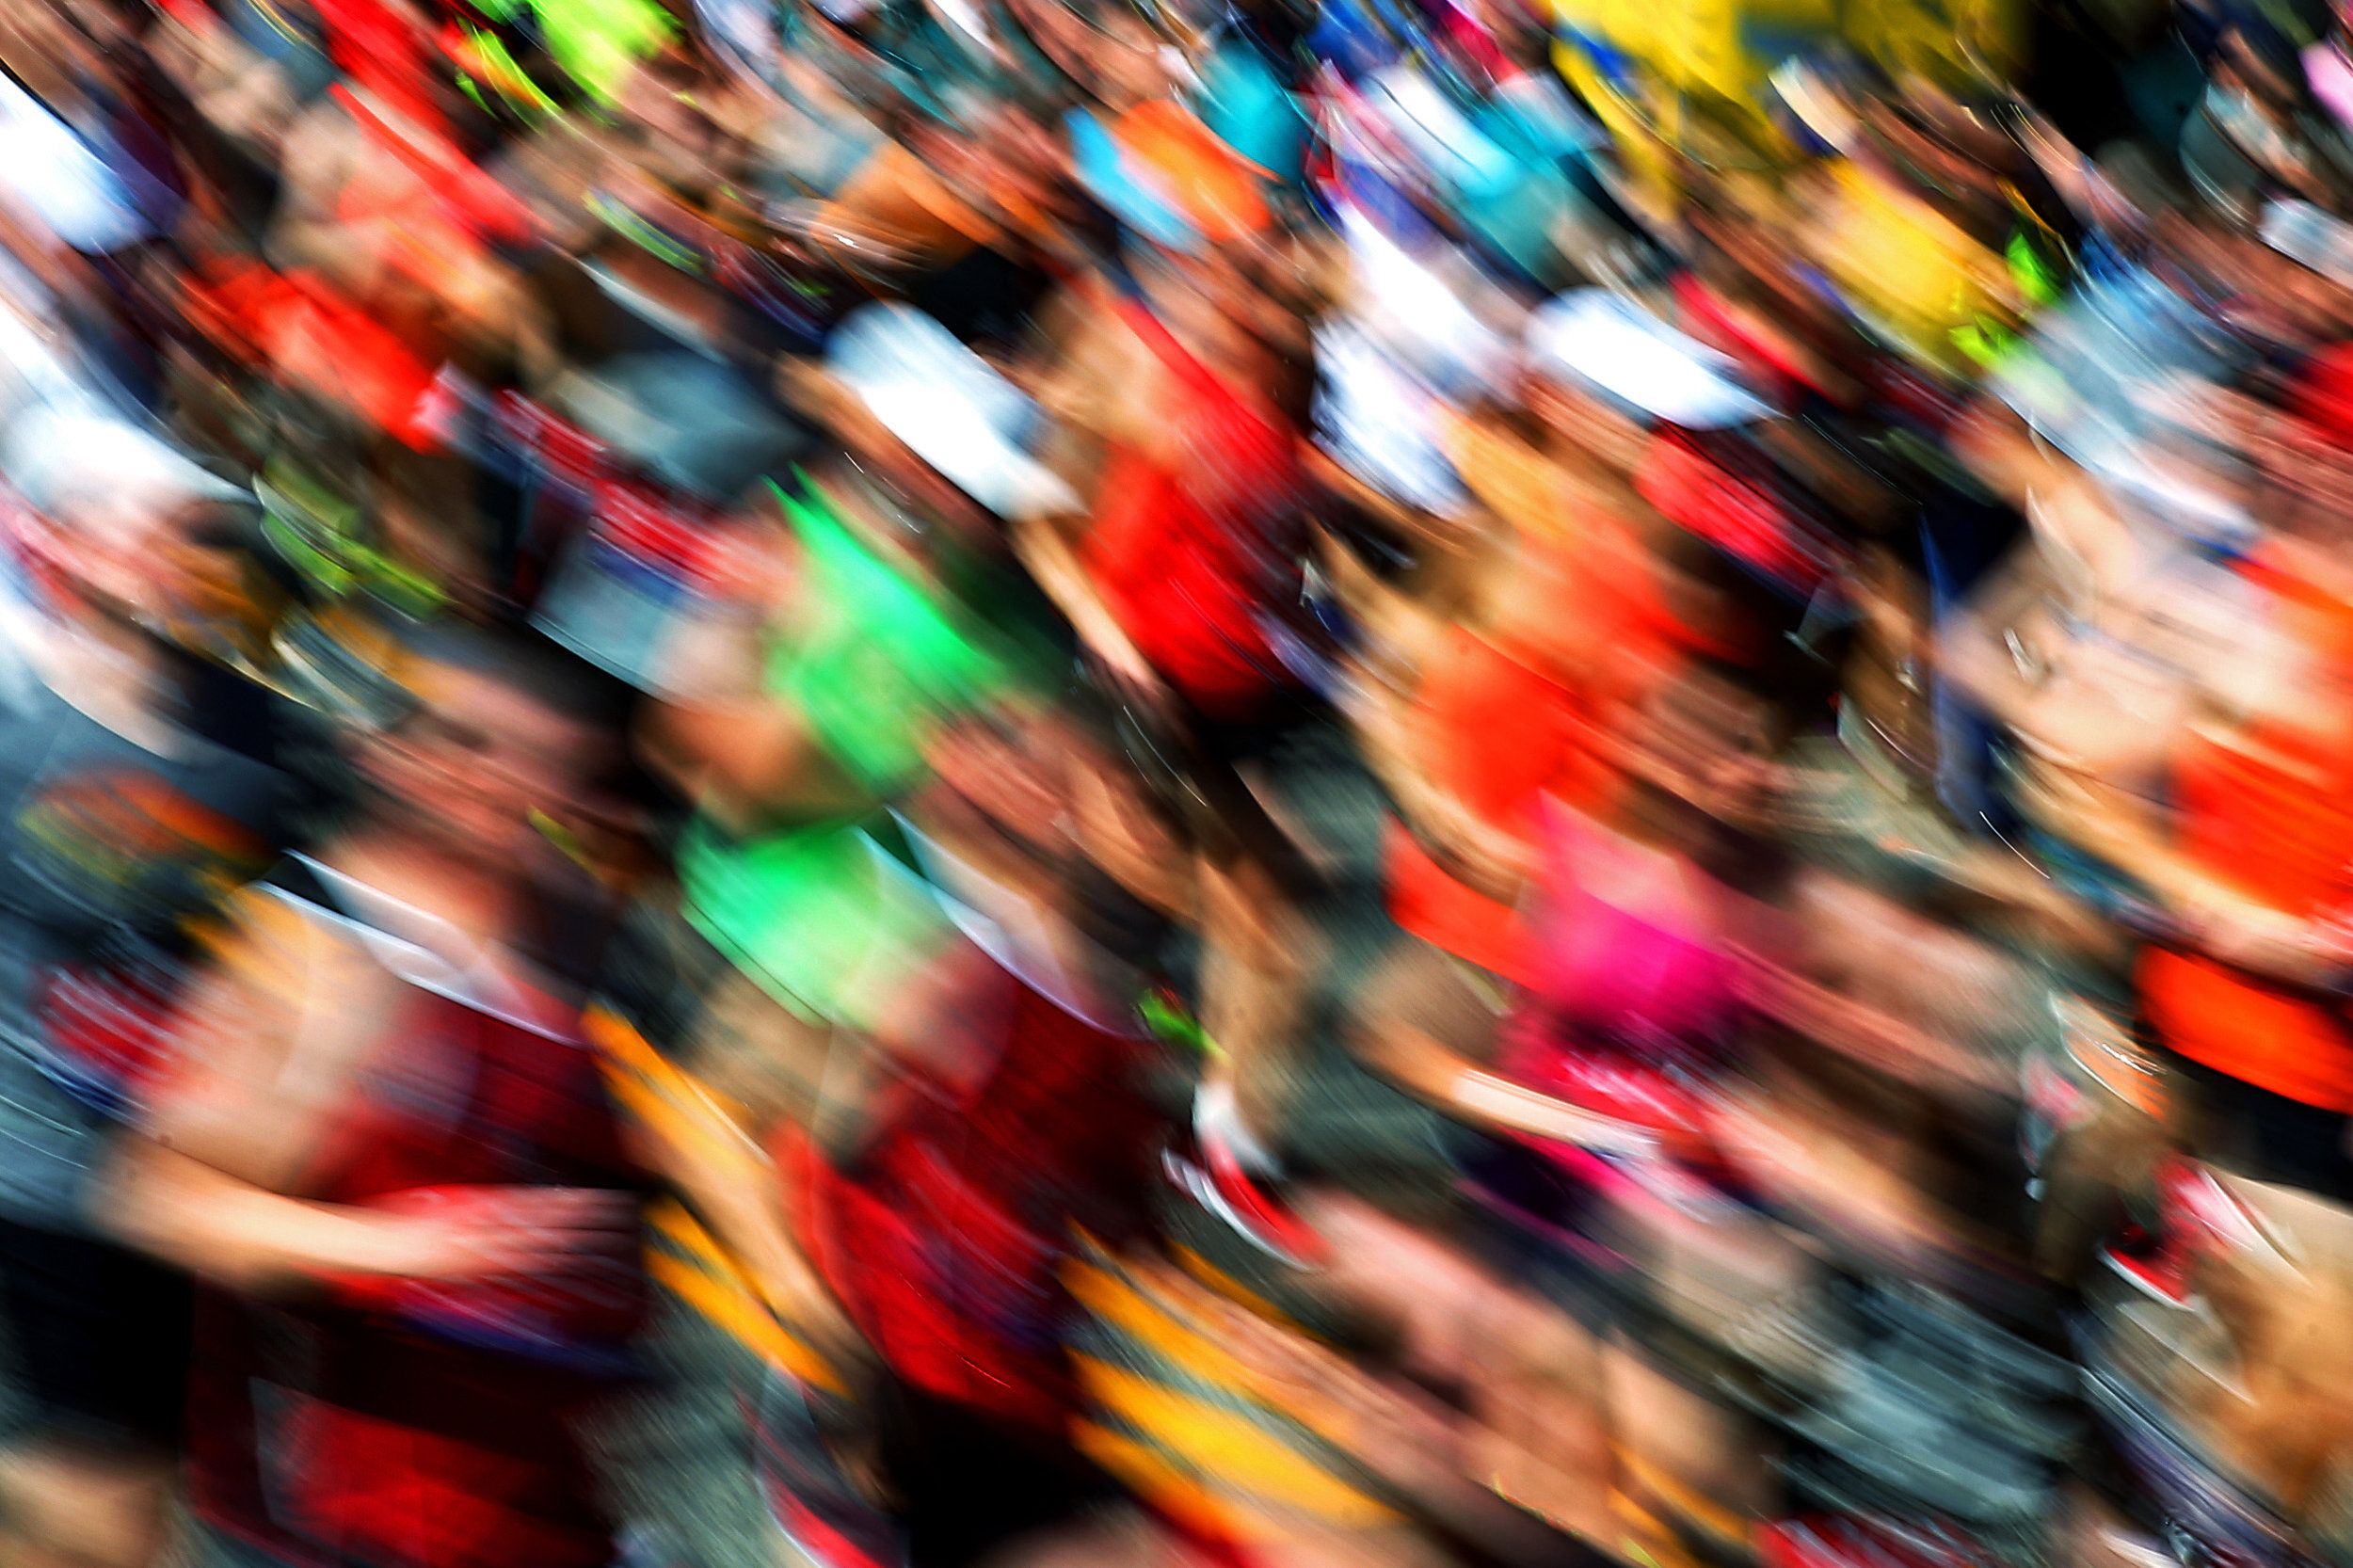 HOPKINTON, MA - APRIL 18: A blurred view as Wave One runners start the 120th Boston Marathon on April 18, 2016 in Hopkinton, Massachusetts. (Photo by Tim Bradbury/Getty Images)